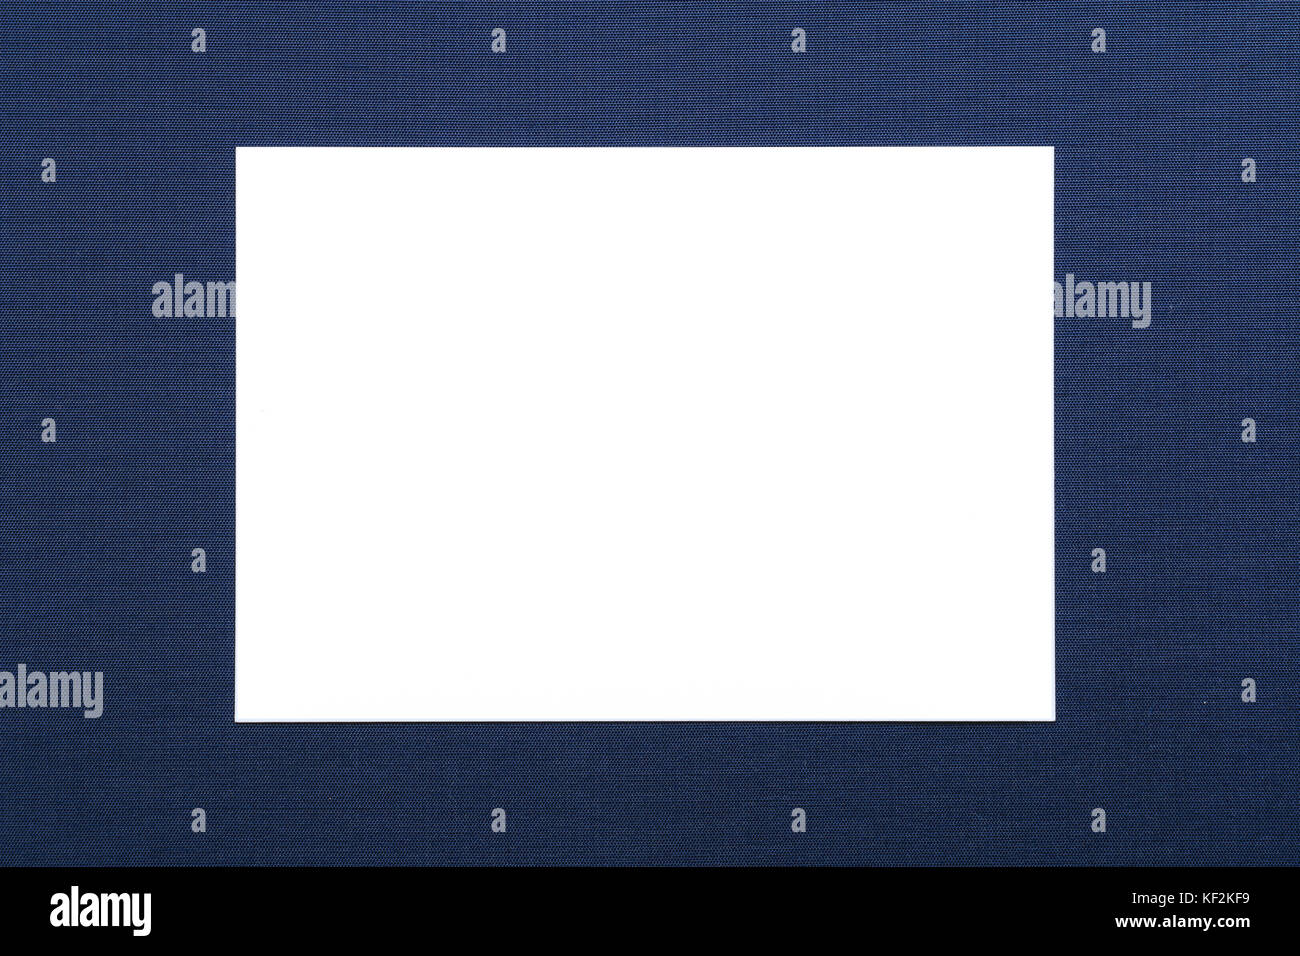 blank white card on navy blue background - Stock Image